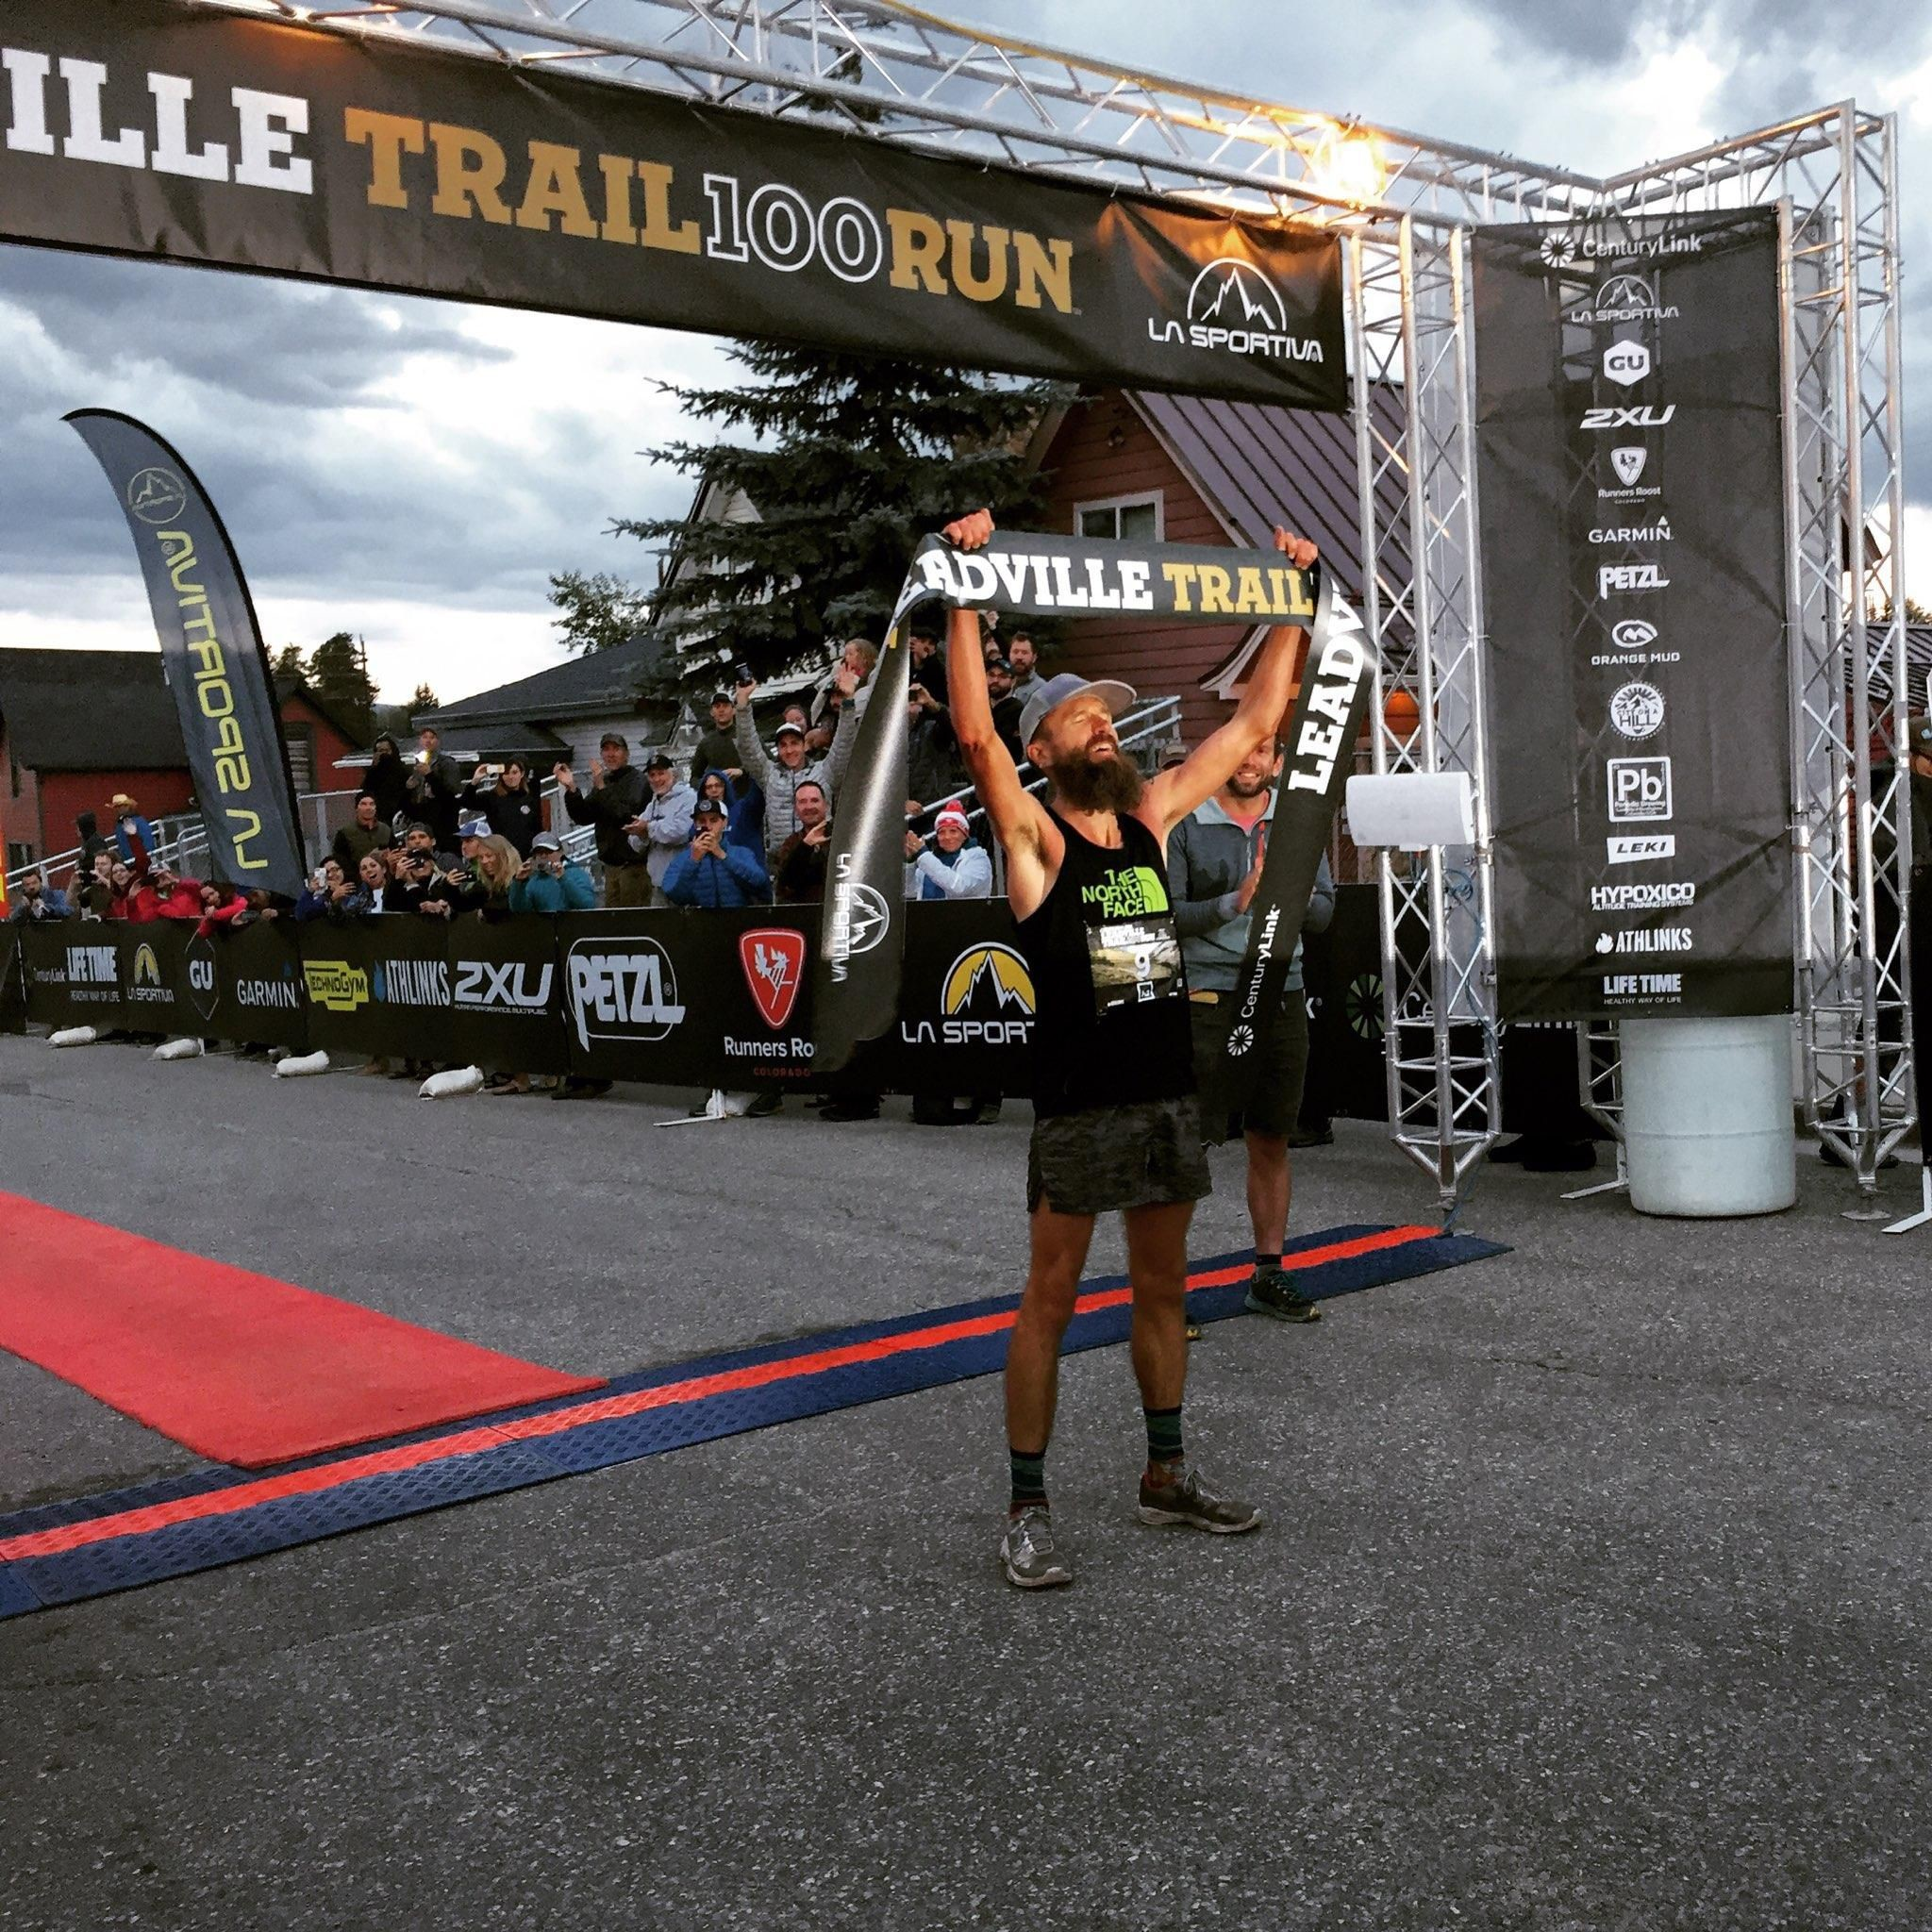 Krar returned to Leadville 100 for his second win with over a hour ahead of second place